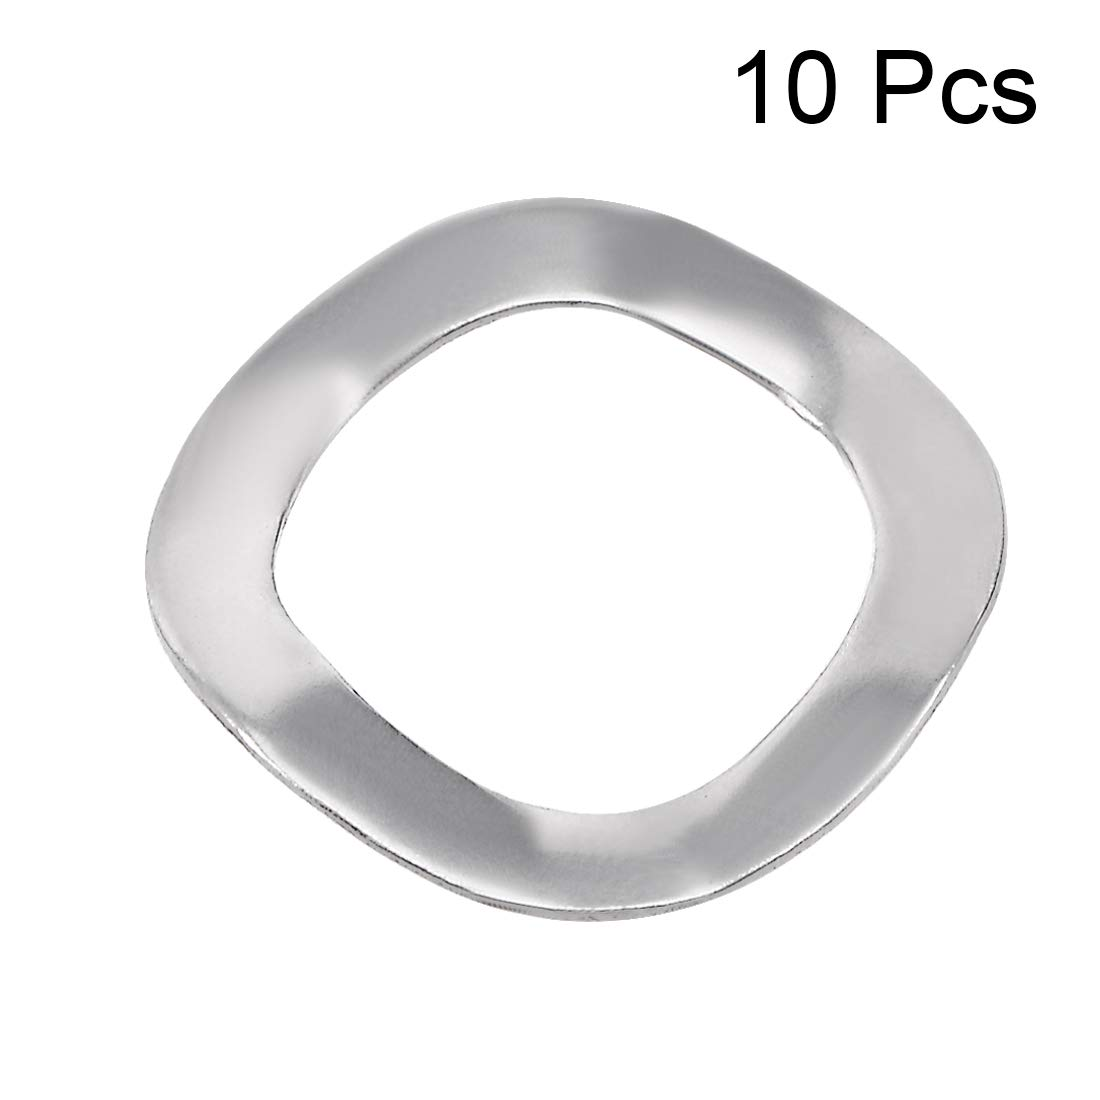 uxcell 10 Pcs 10.5mm x 15mm x 0.3mm 304 Stainless Steel Wave Spring Washer for Screw Bolt